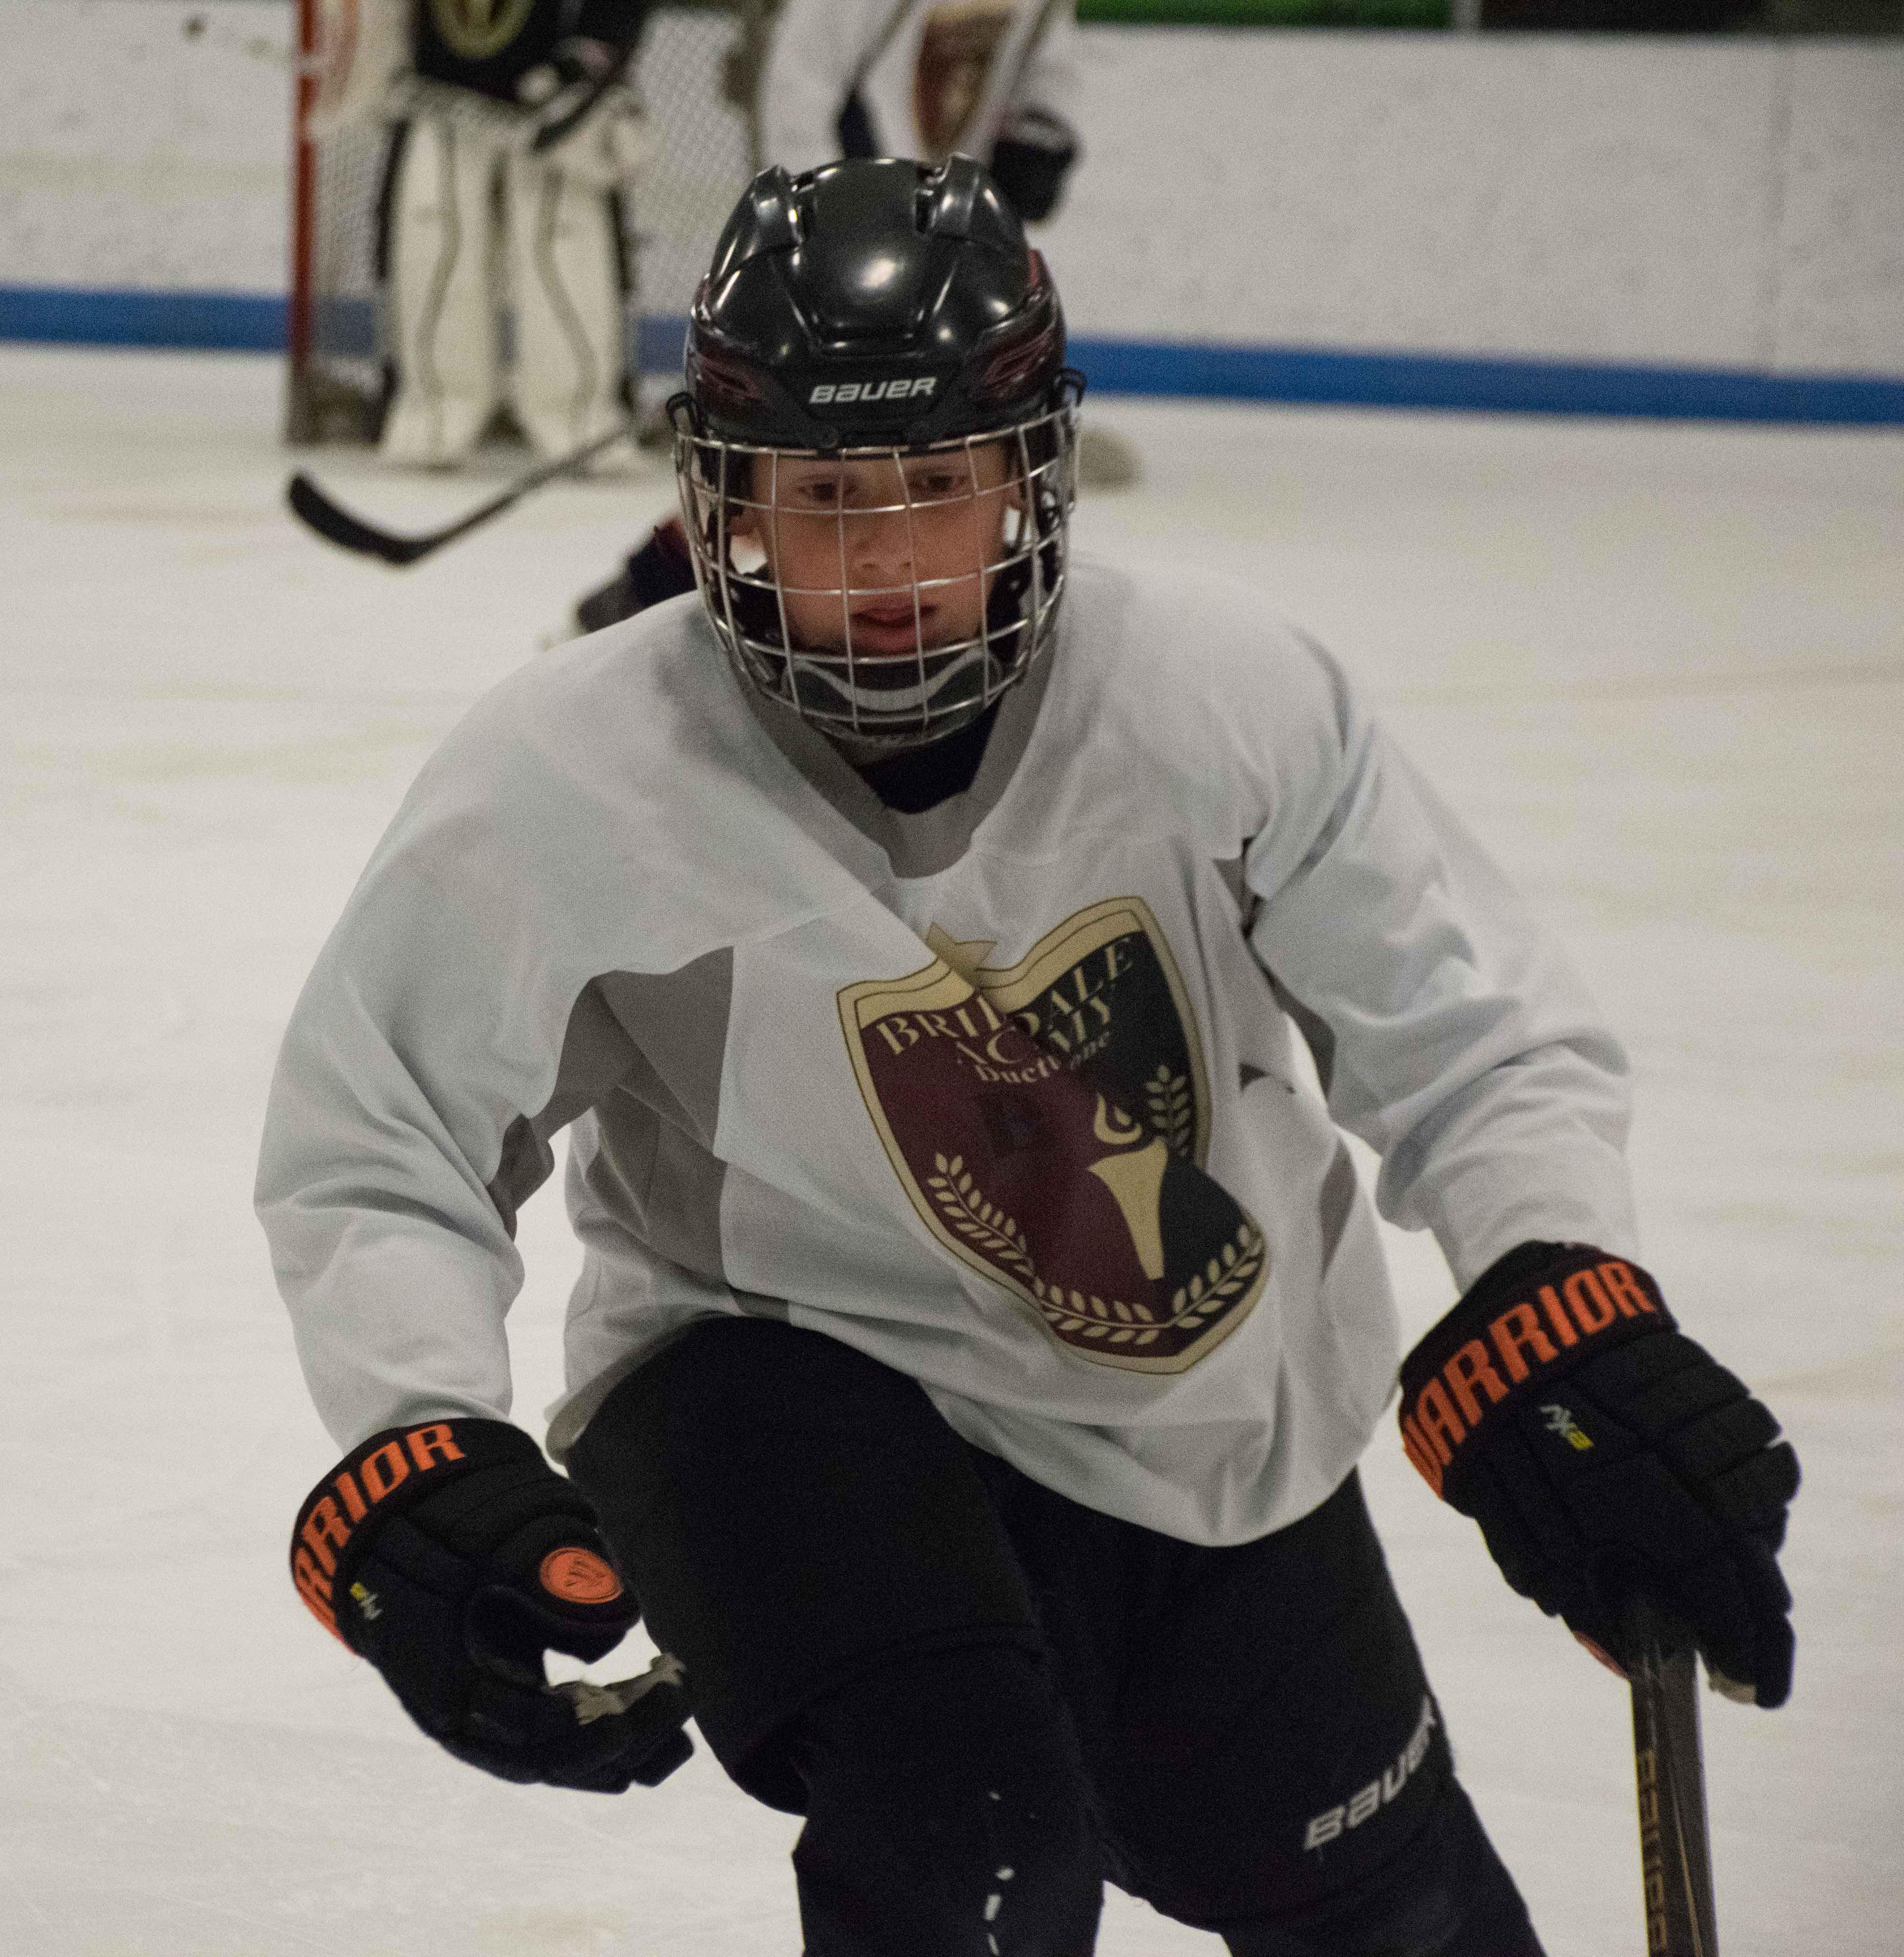 train for posture and agility when training youth hockey players